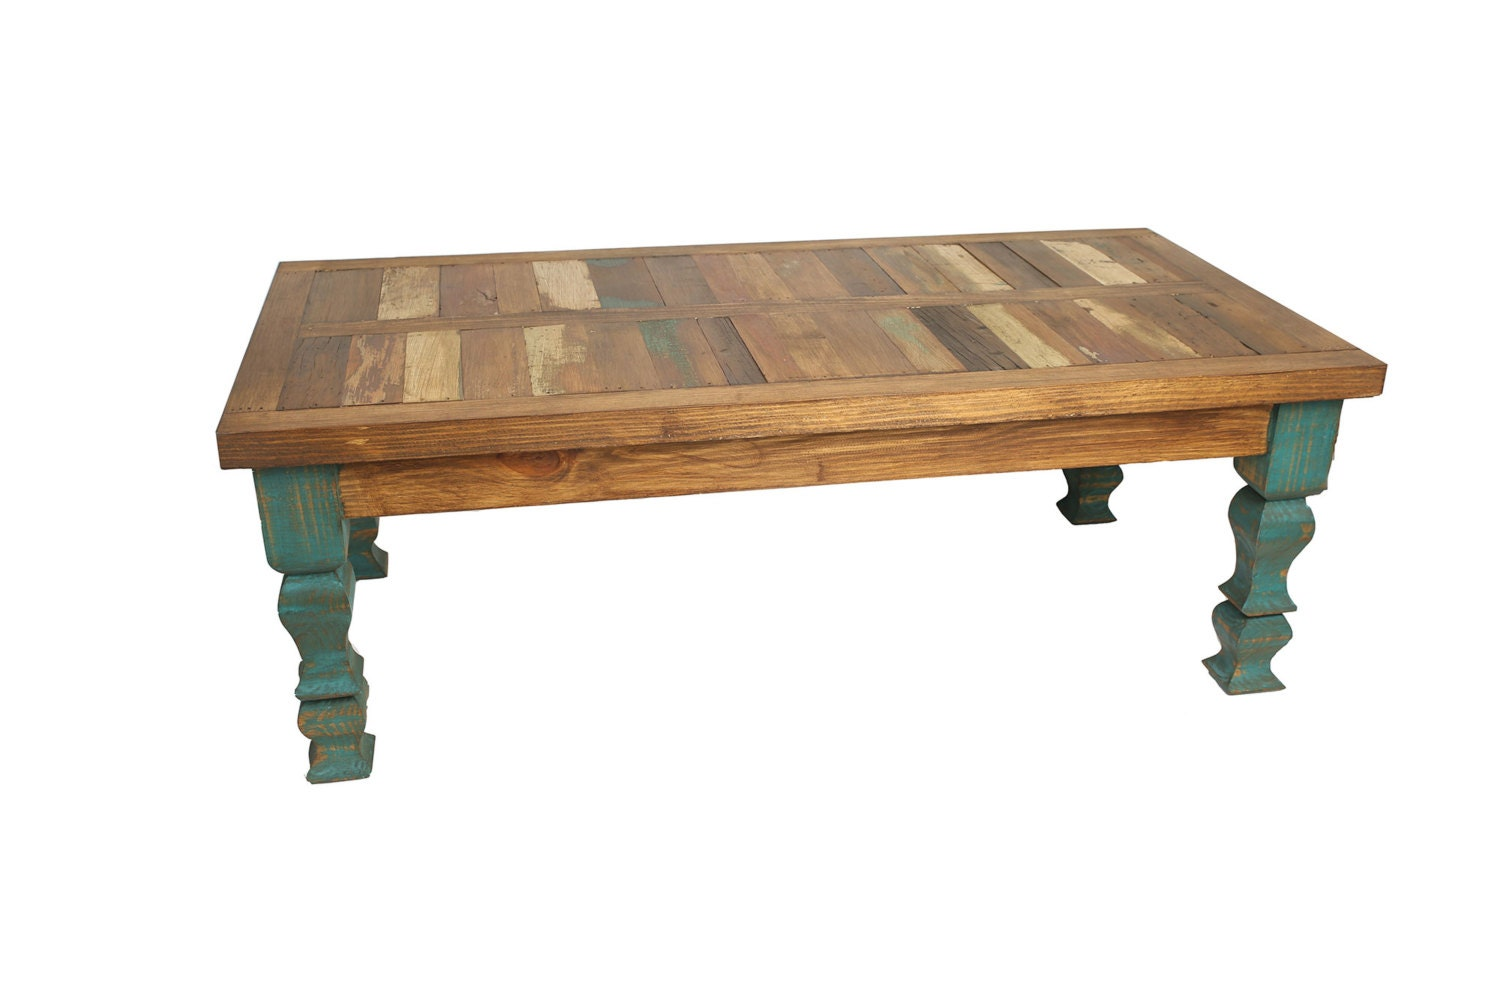 Reclaimed Wood Turquoise Coffee Table 48l X 24w X 17h